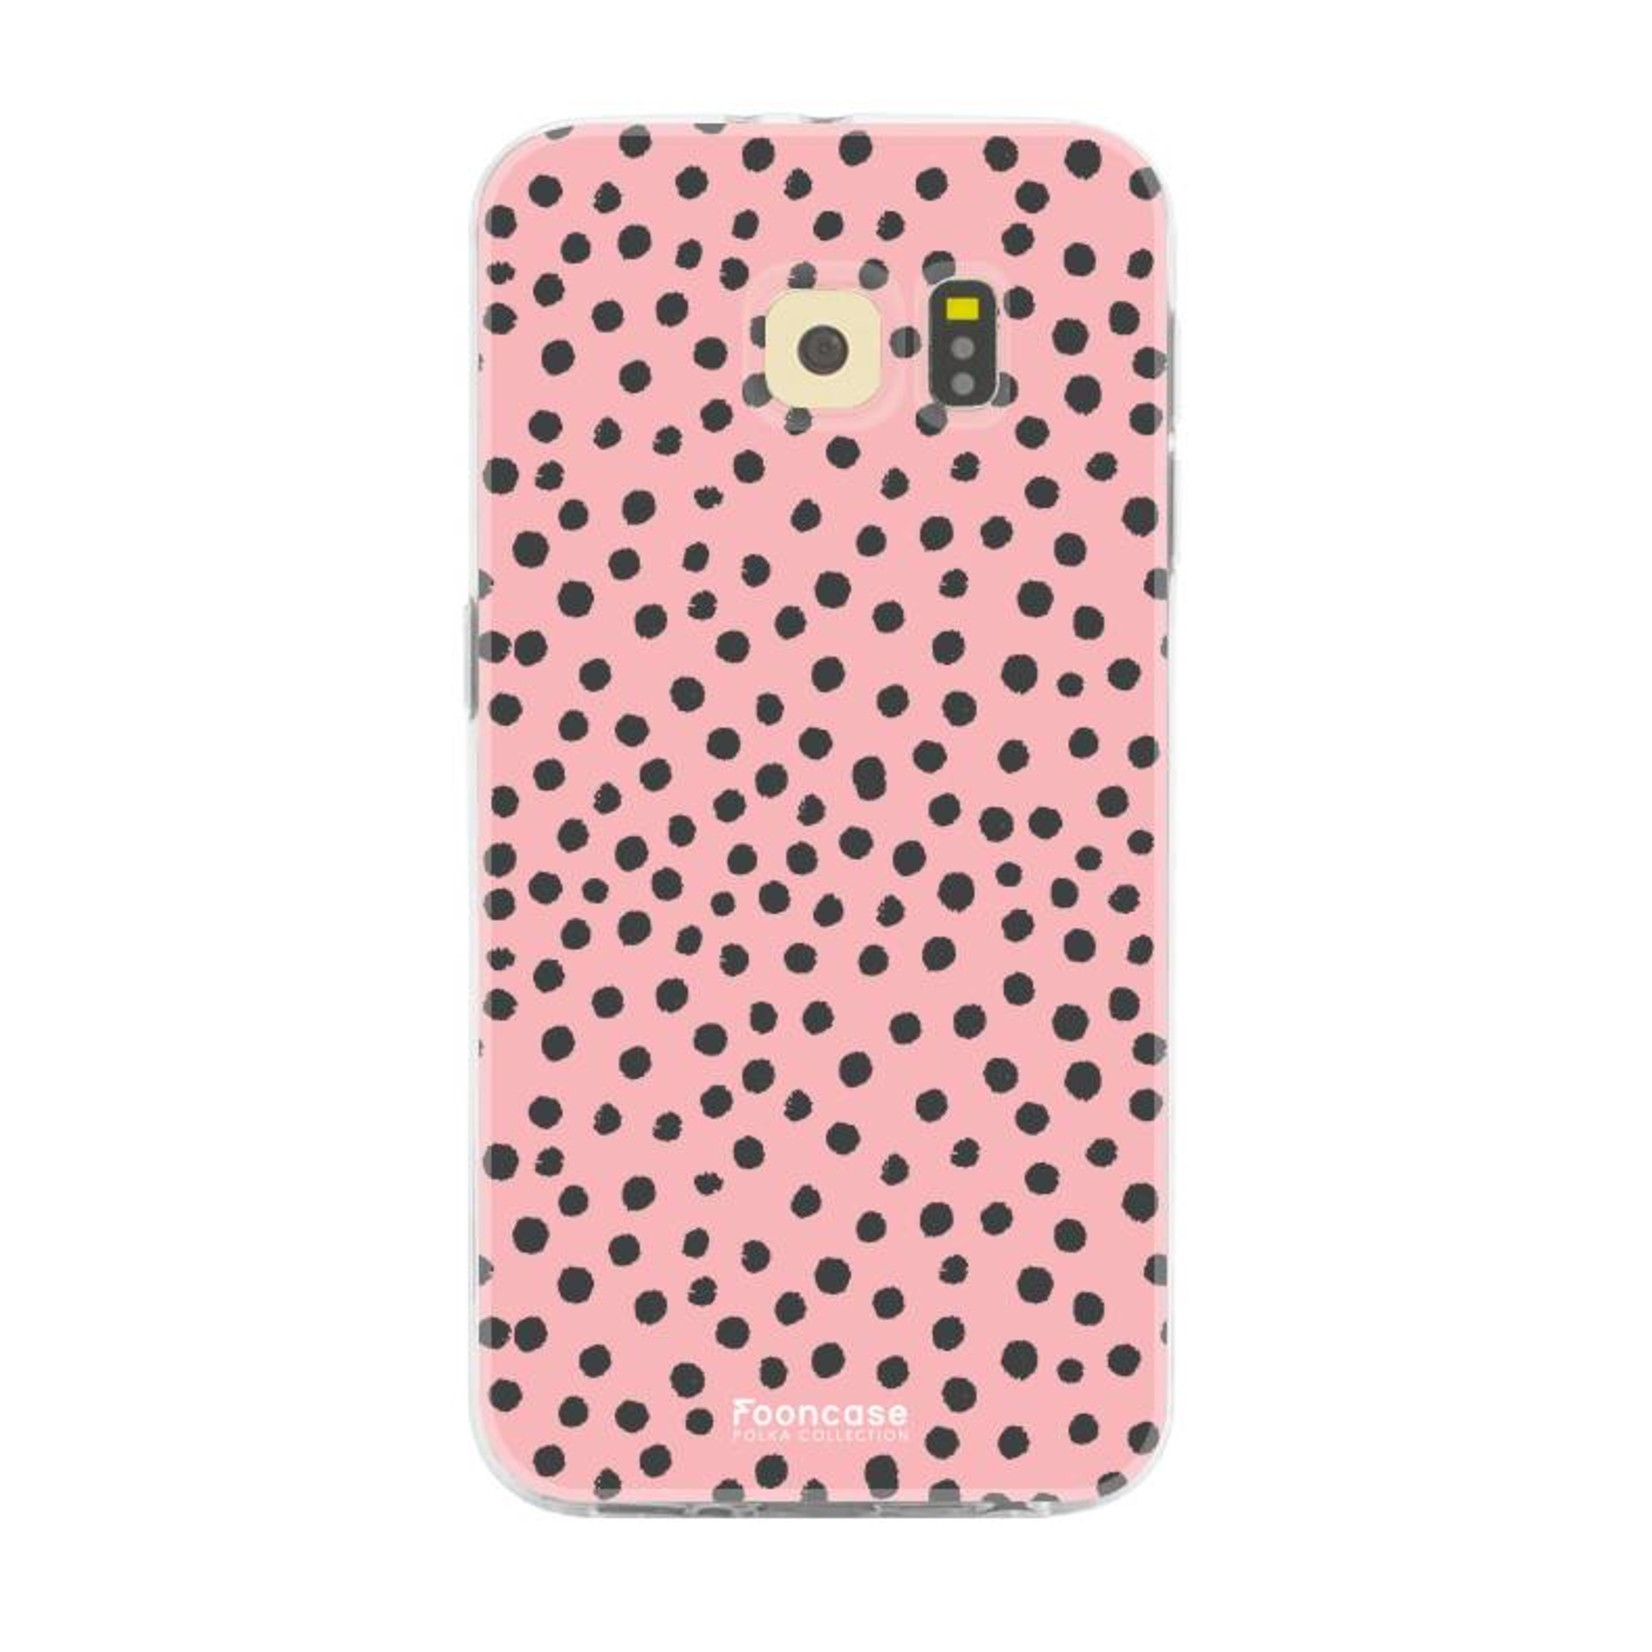 FOONCASE Samsung Galaxy S6 hoesje TPU Soft Case - Back Cover - POLKA COLLECTION / Stipjes / Stippen / Roze